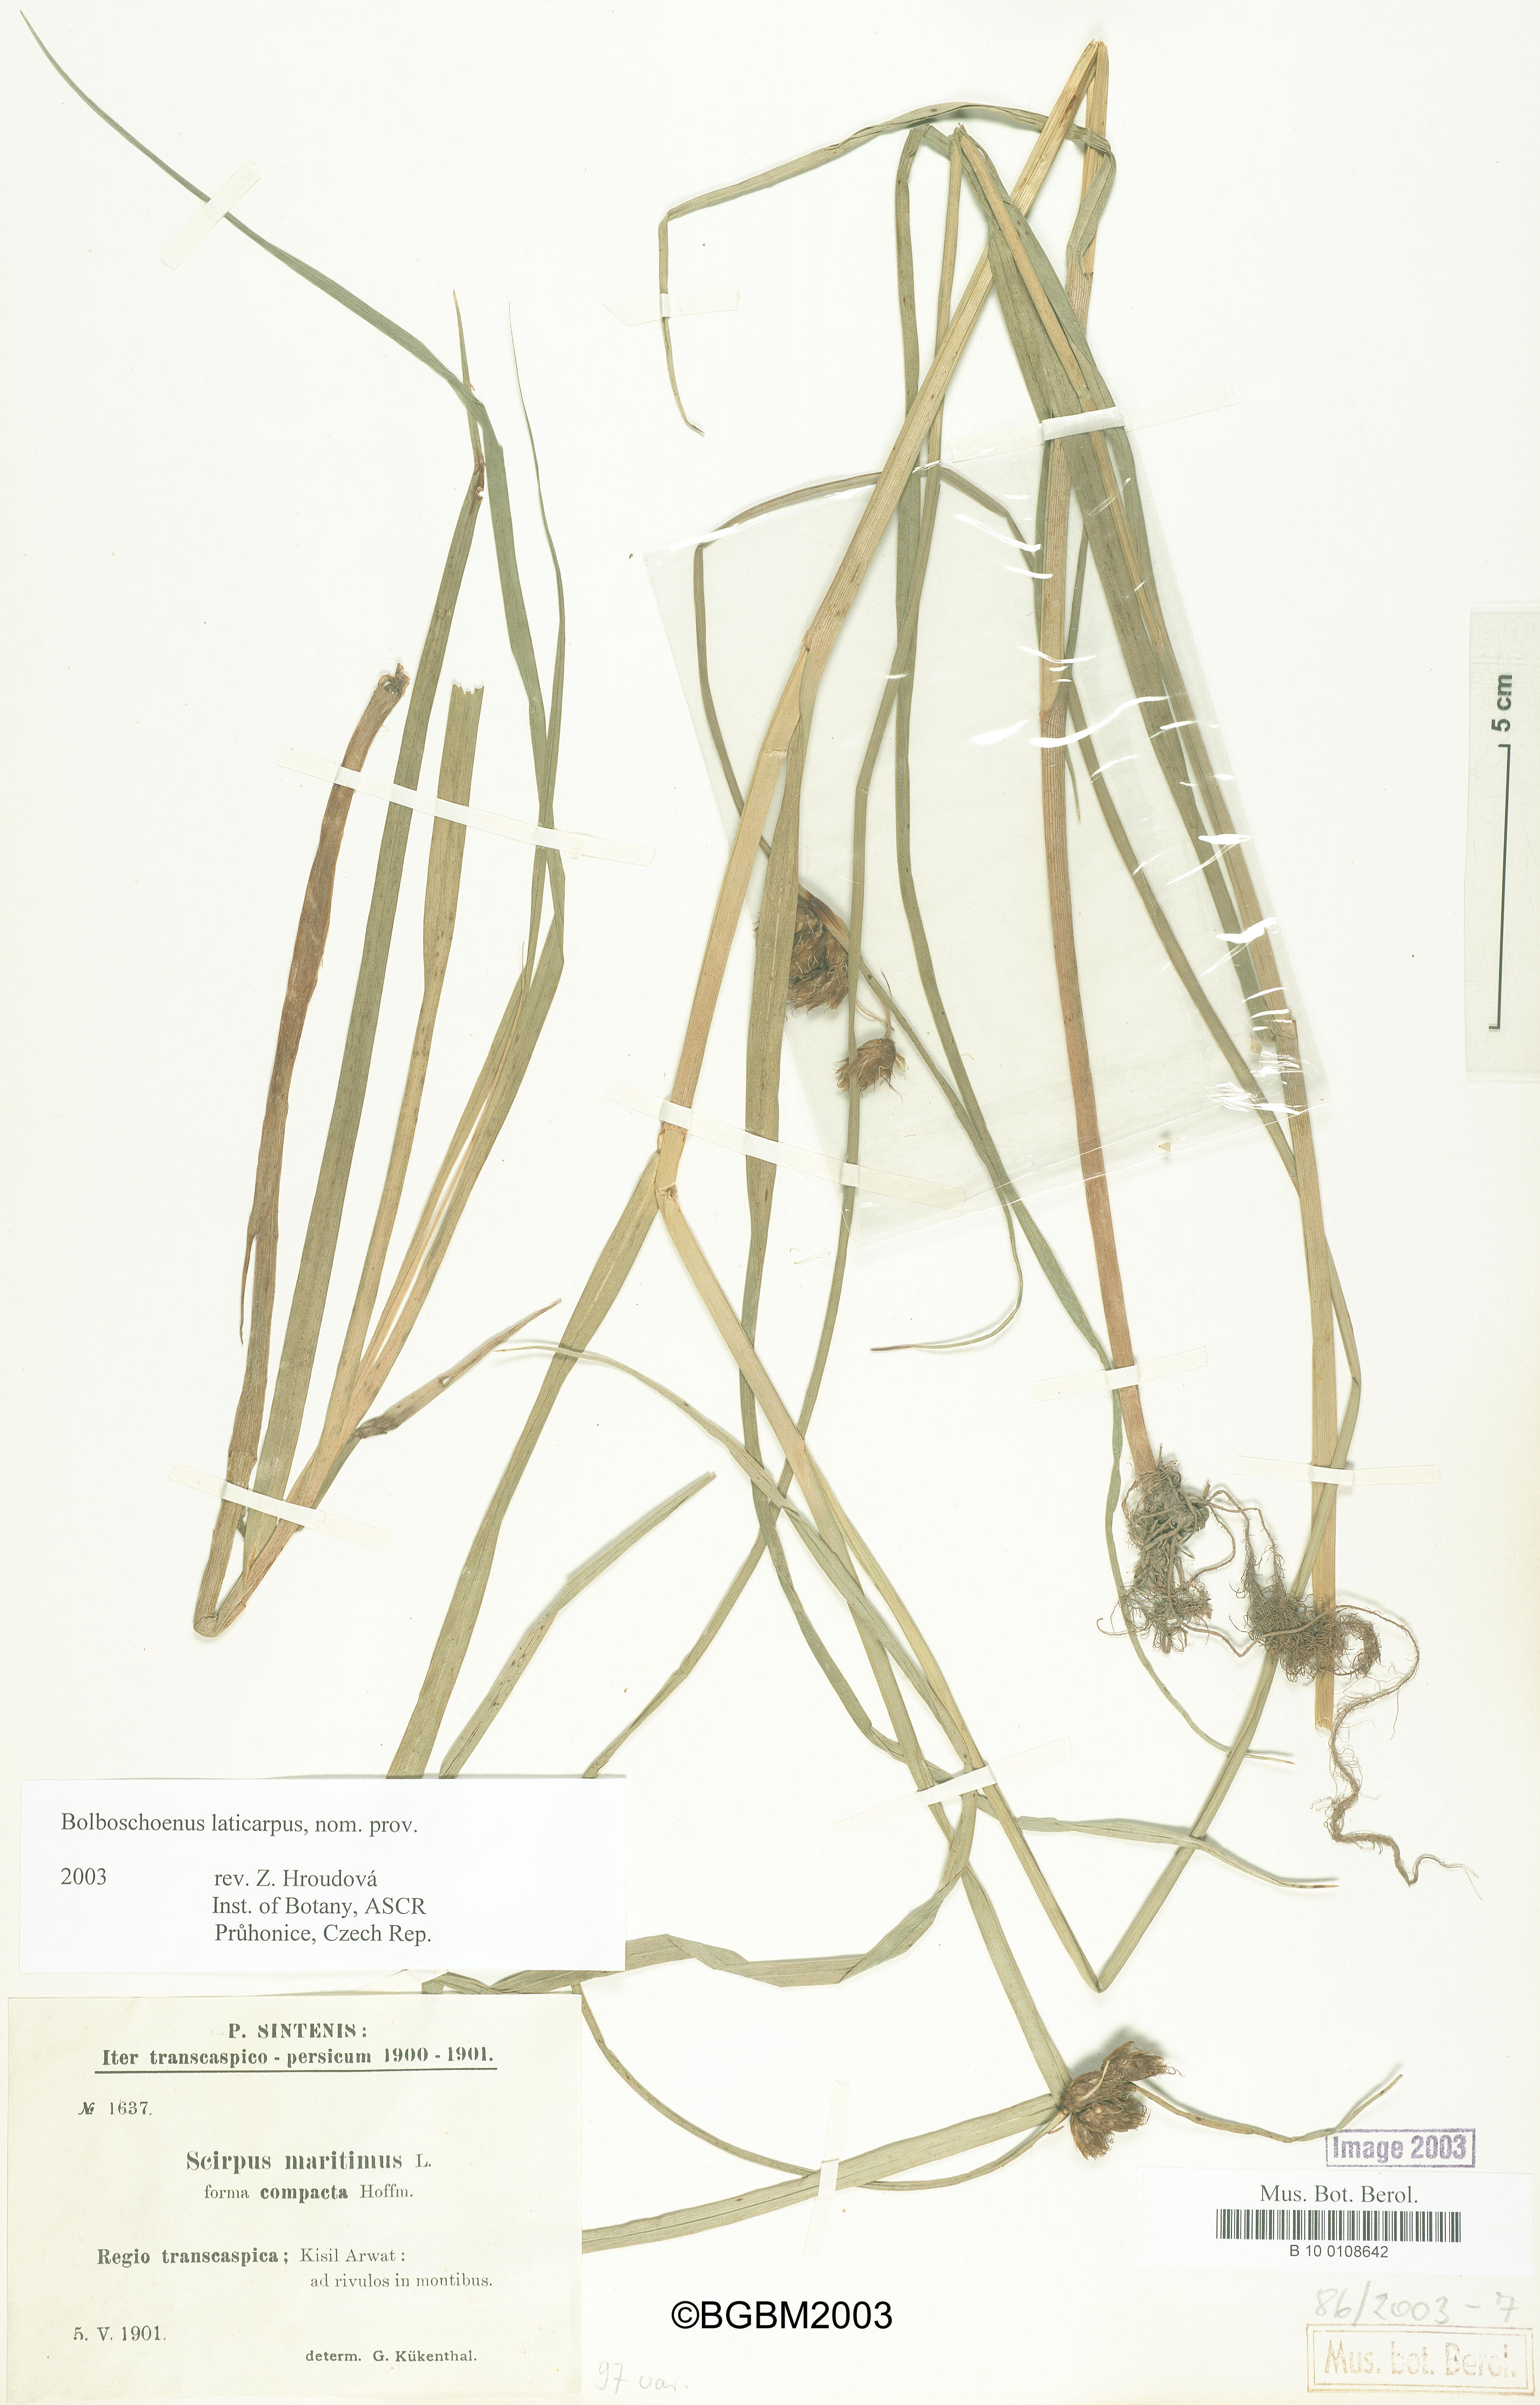 © Röpert, D. (Ed.) 2000- (continuously updated): Digital specimen images at the Herbarium Berolinense. - Published on the Internet http://ww2.bgbm.org/herbarium/ (Barcode: B 10 0108642 / ImageId: 215934) [accessed 24-Dec-12].<br>